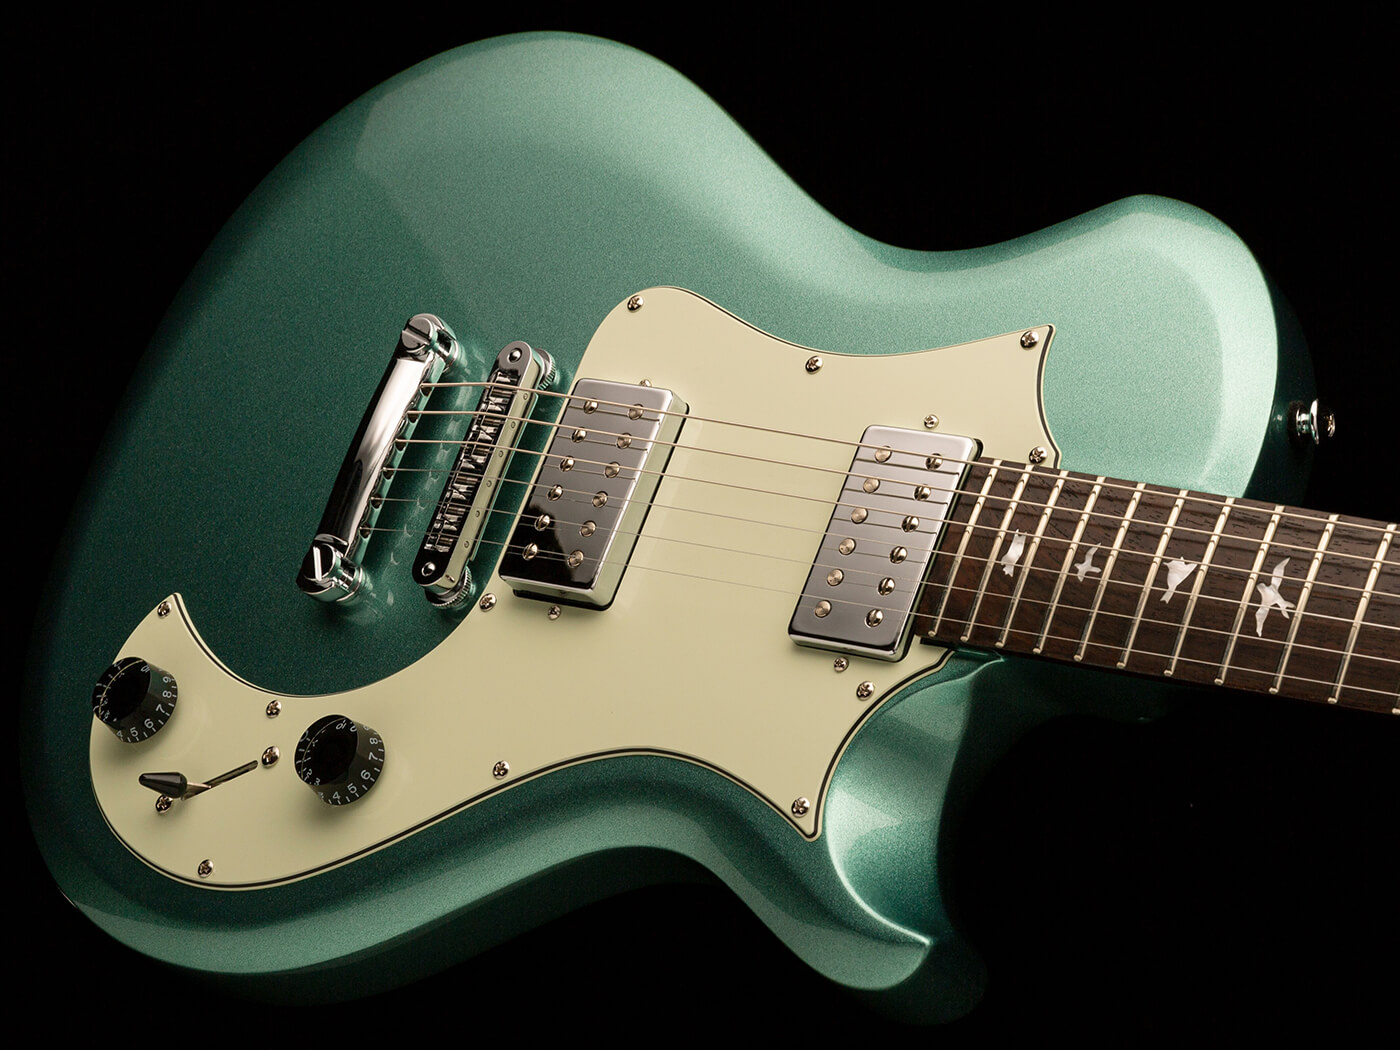 The PRS Starla in Frost Green Metallic